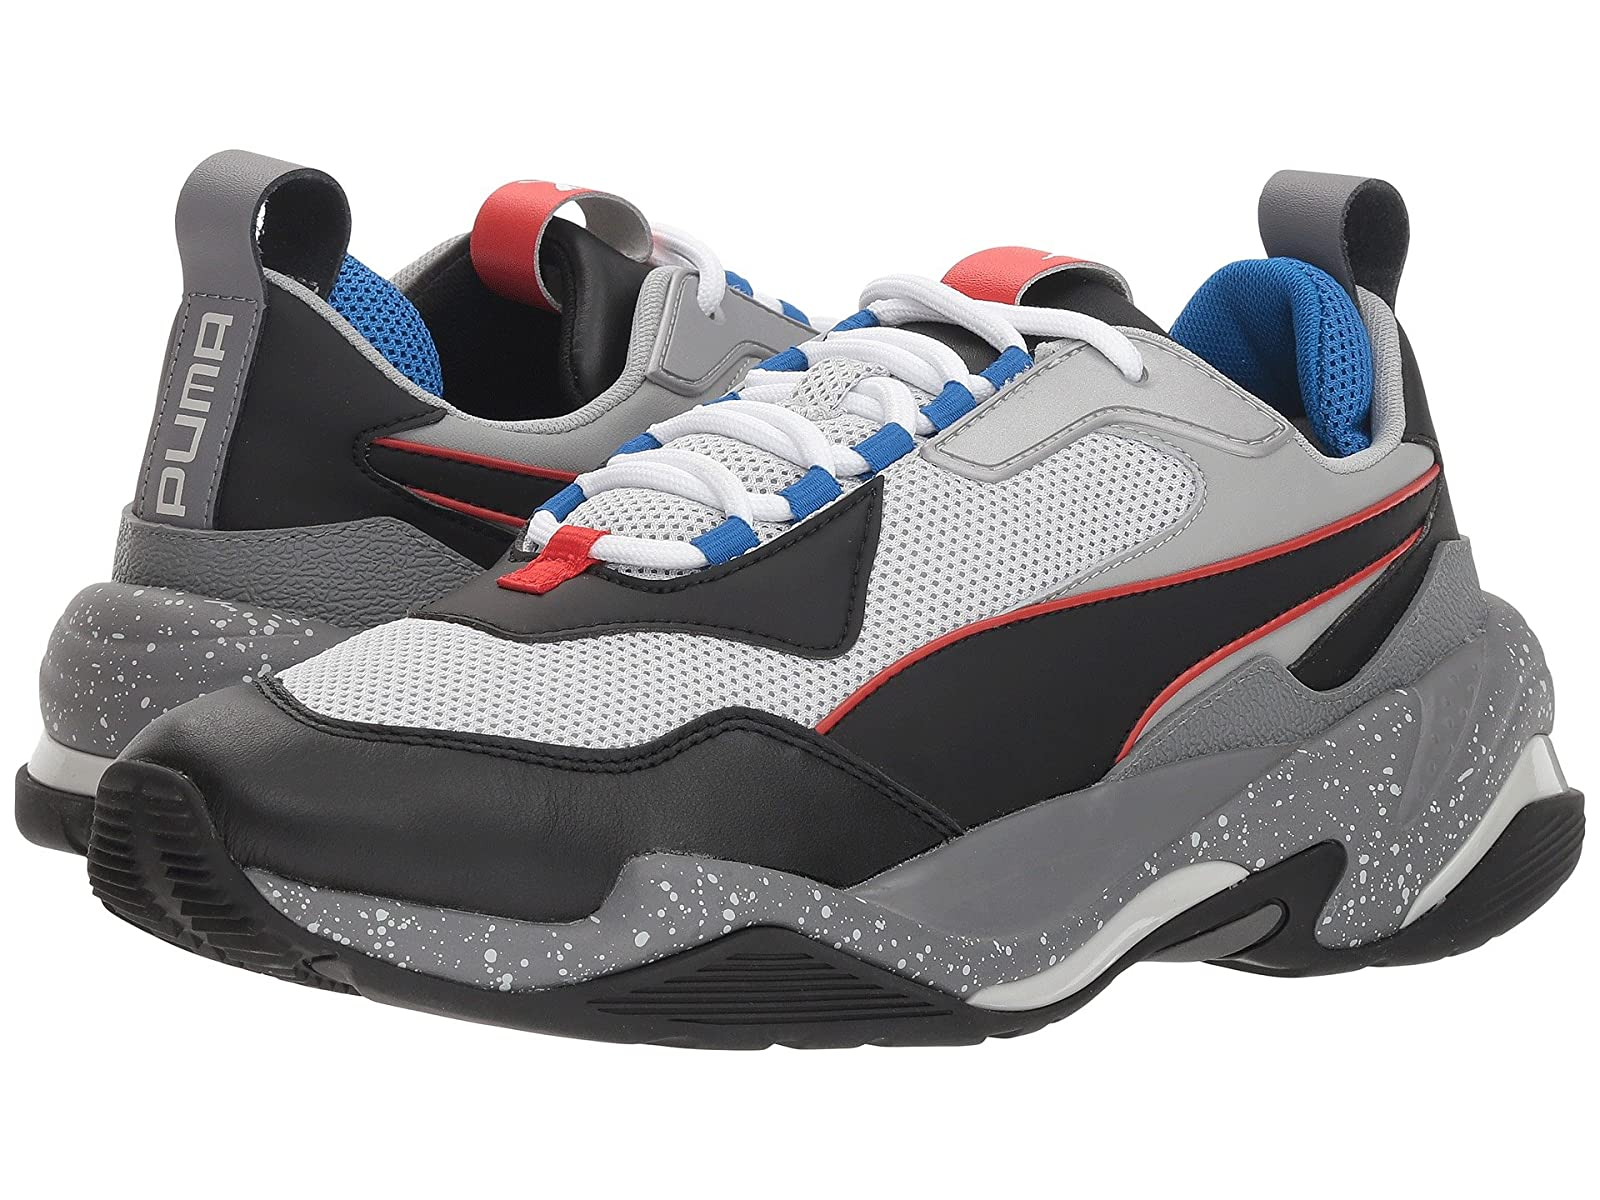 PUMA Thunder ElectricAtmospheric grades have affordable shoes